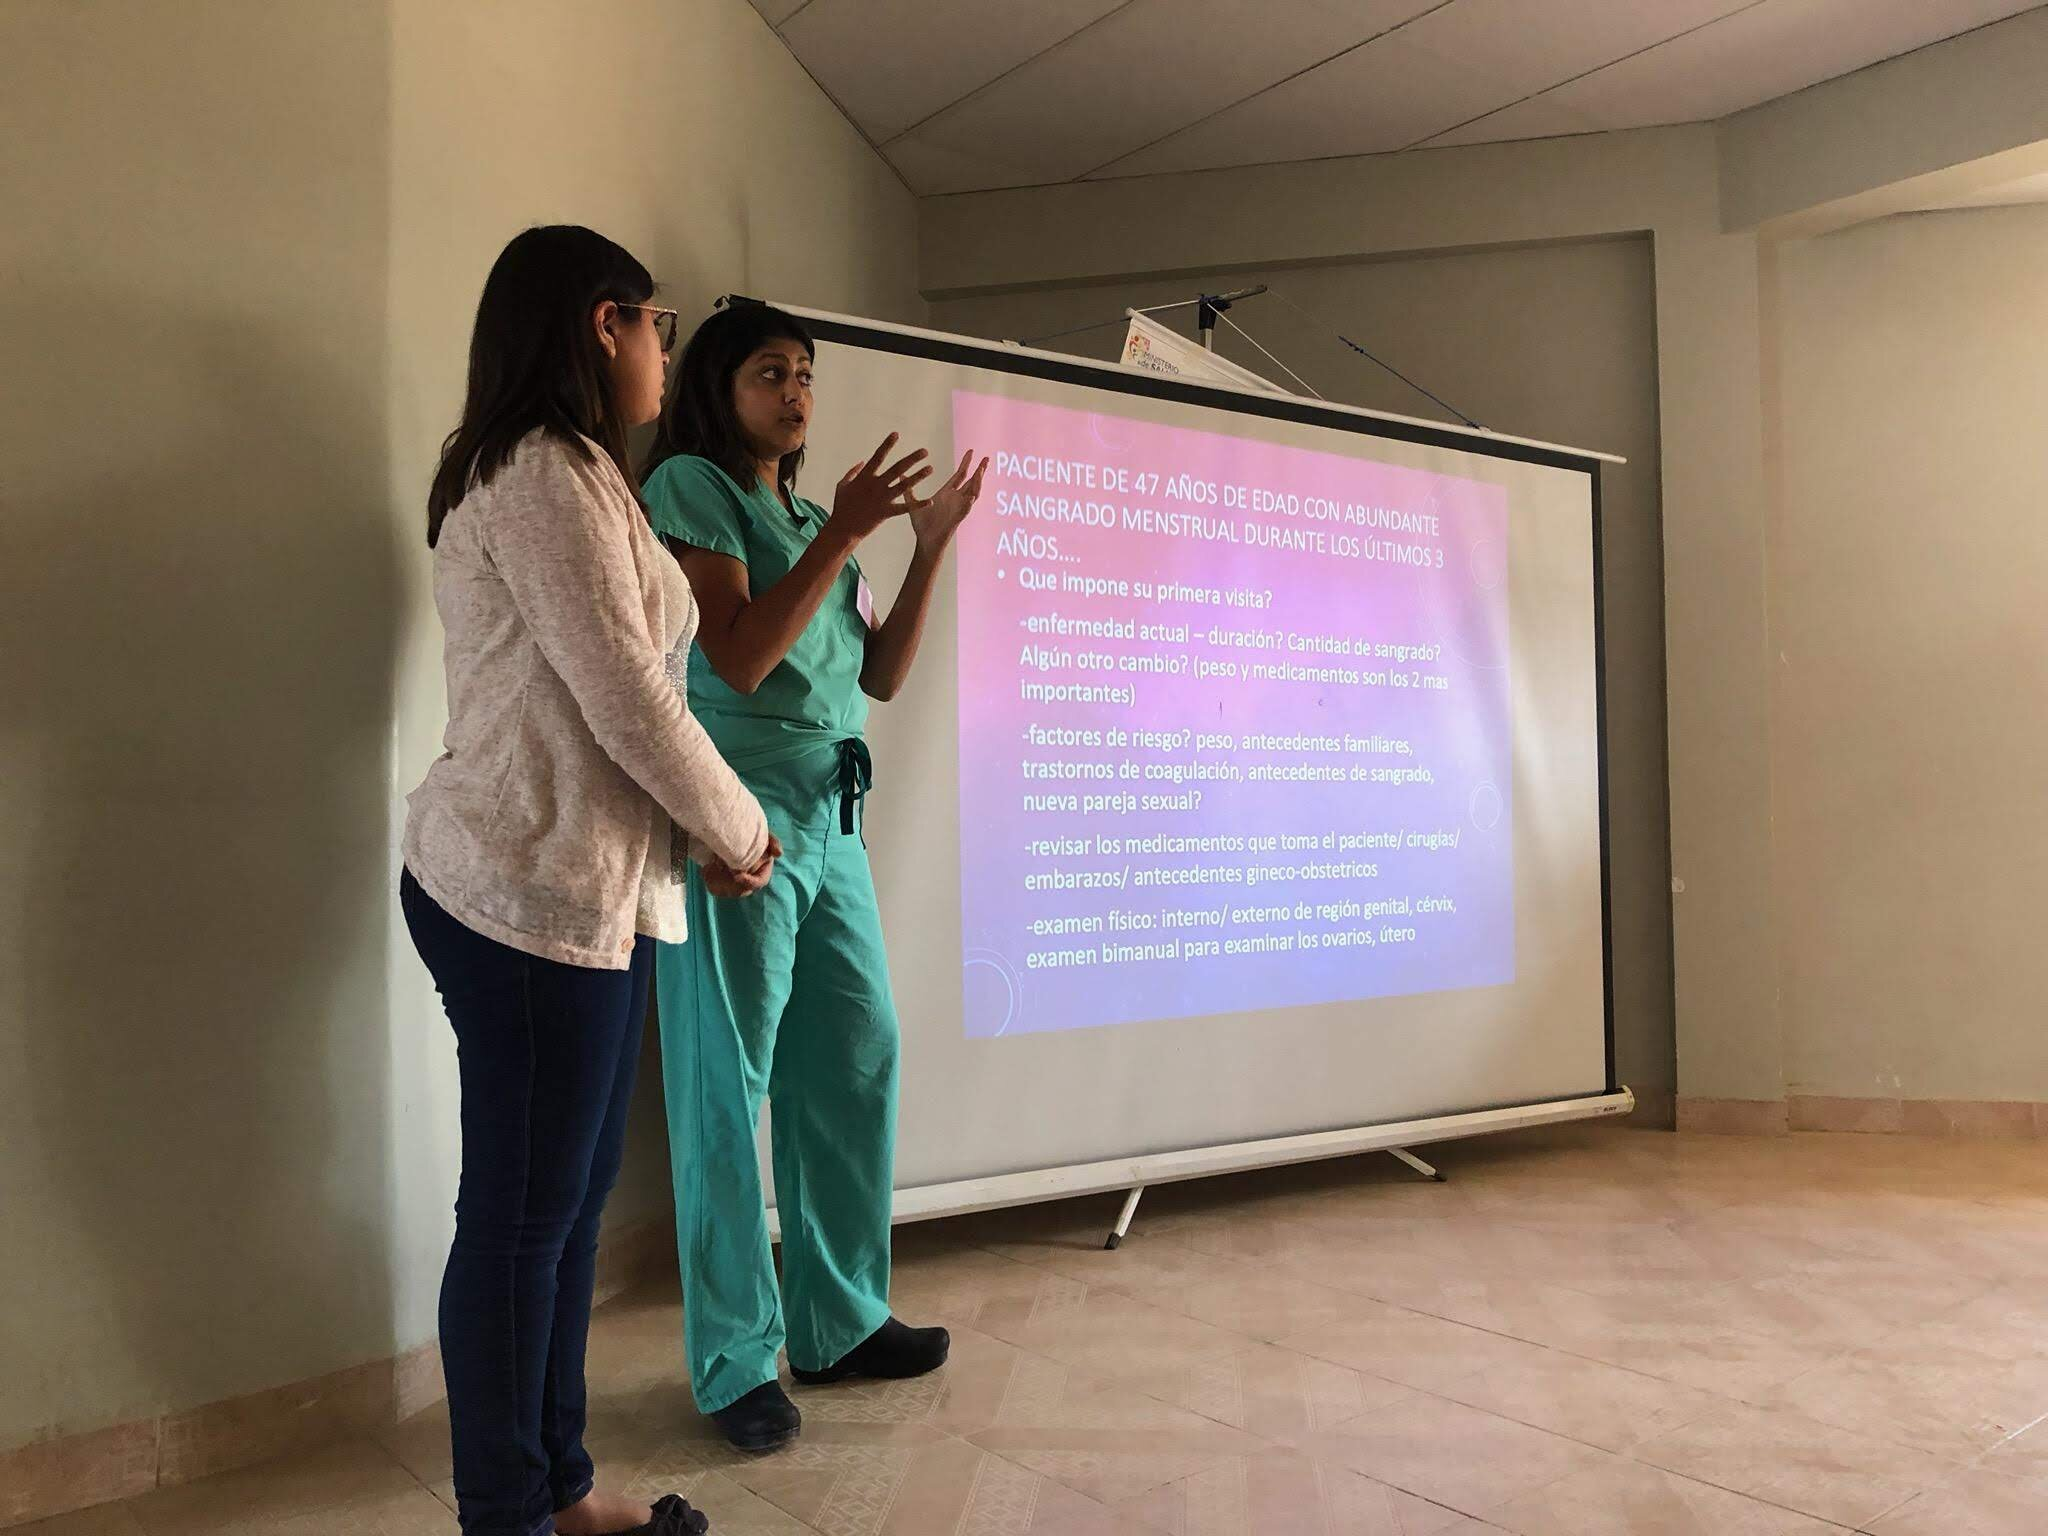 In addition to surgical and clinical services, Dr. Agarwal offered a lecture to her colleagues.